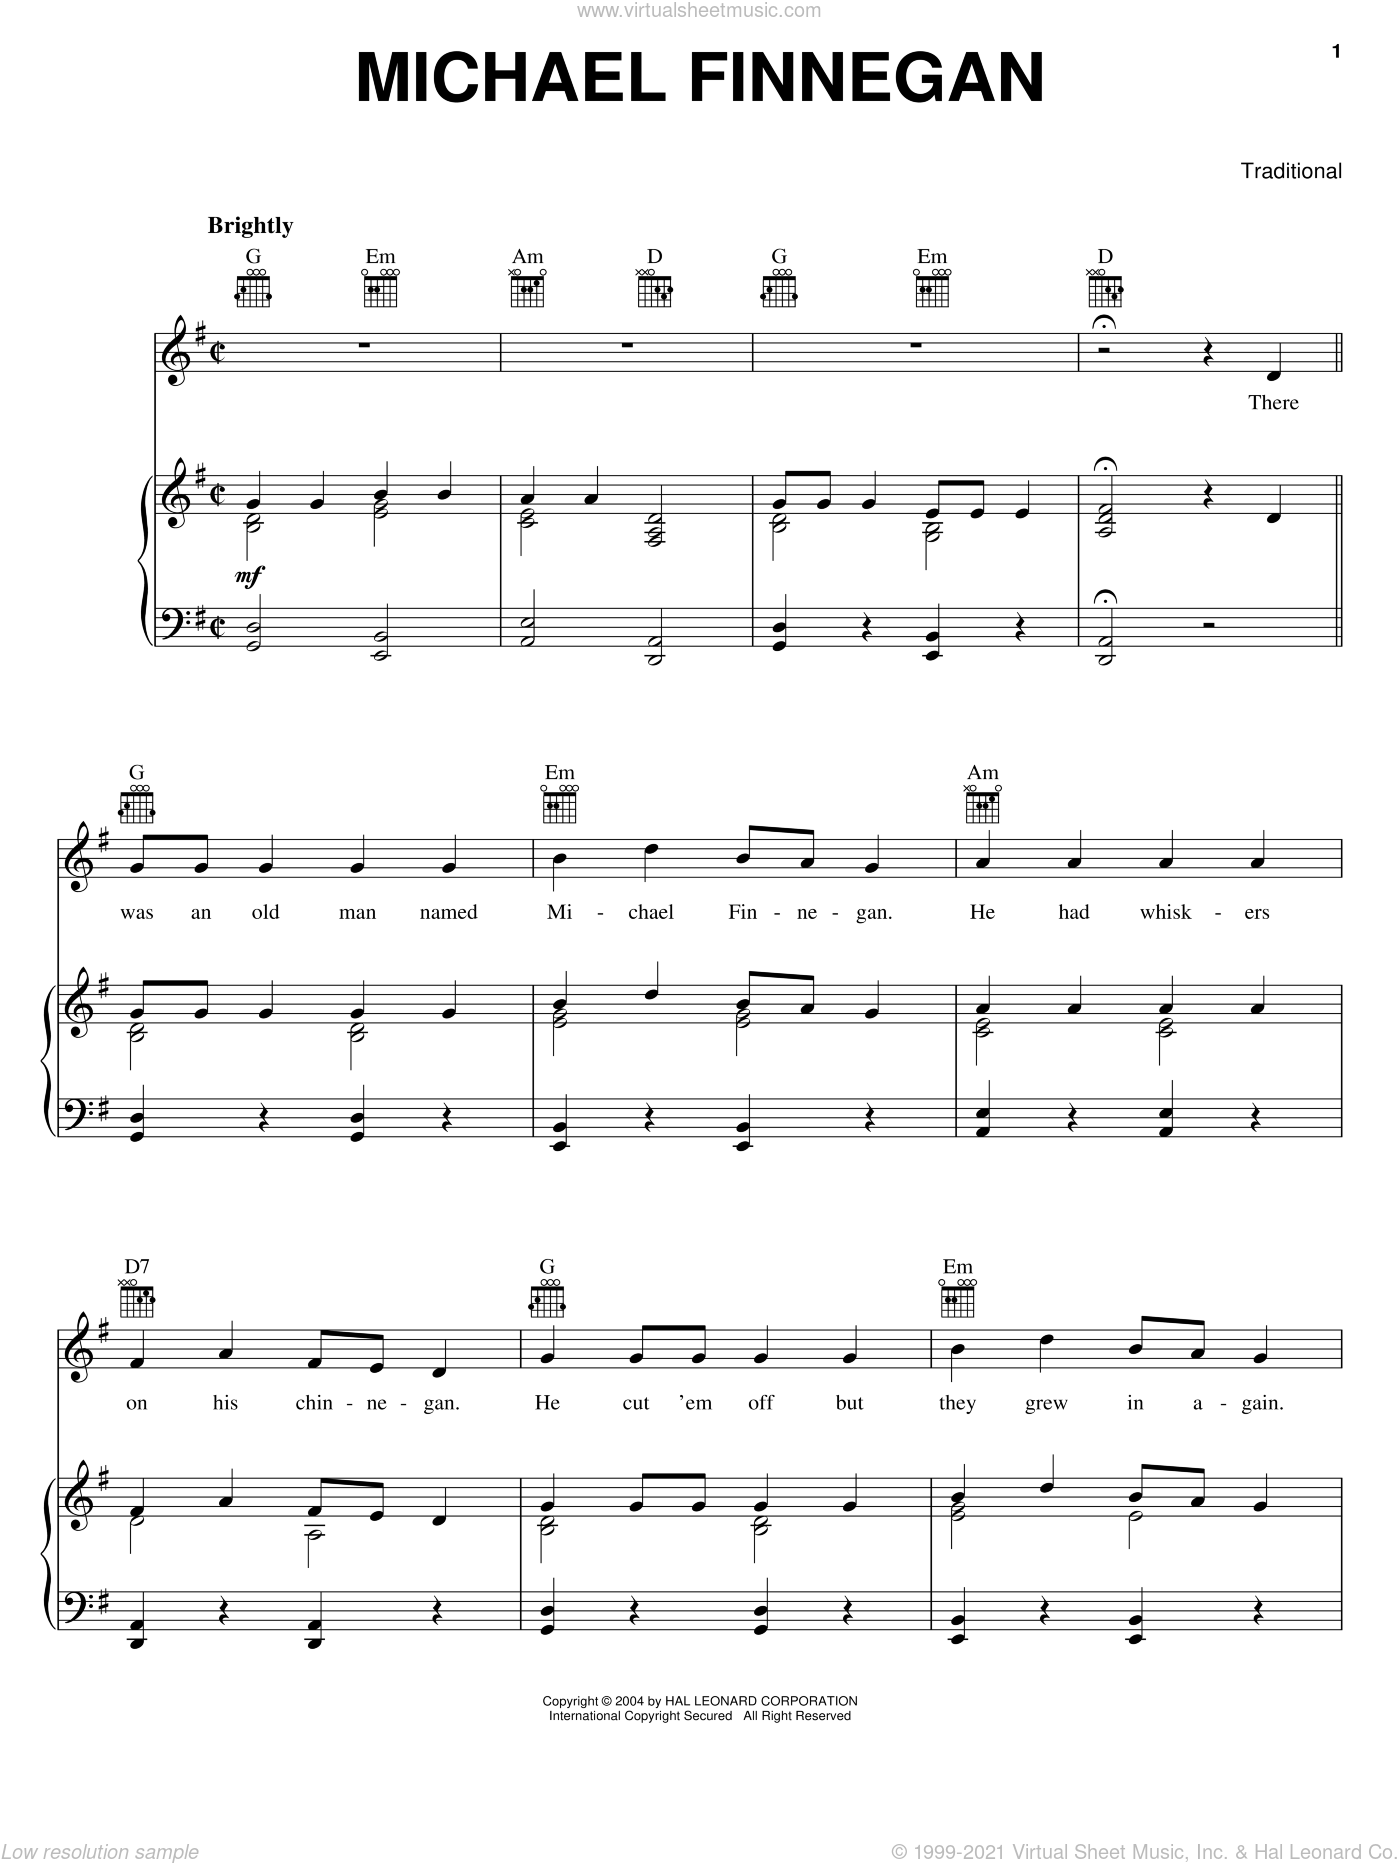 Michael Finnegan sheet music for voice, piano or guitar, intermediate skill level